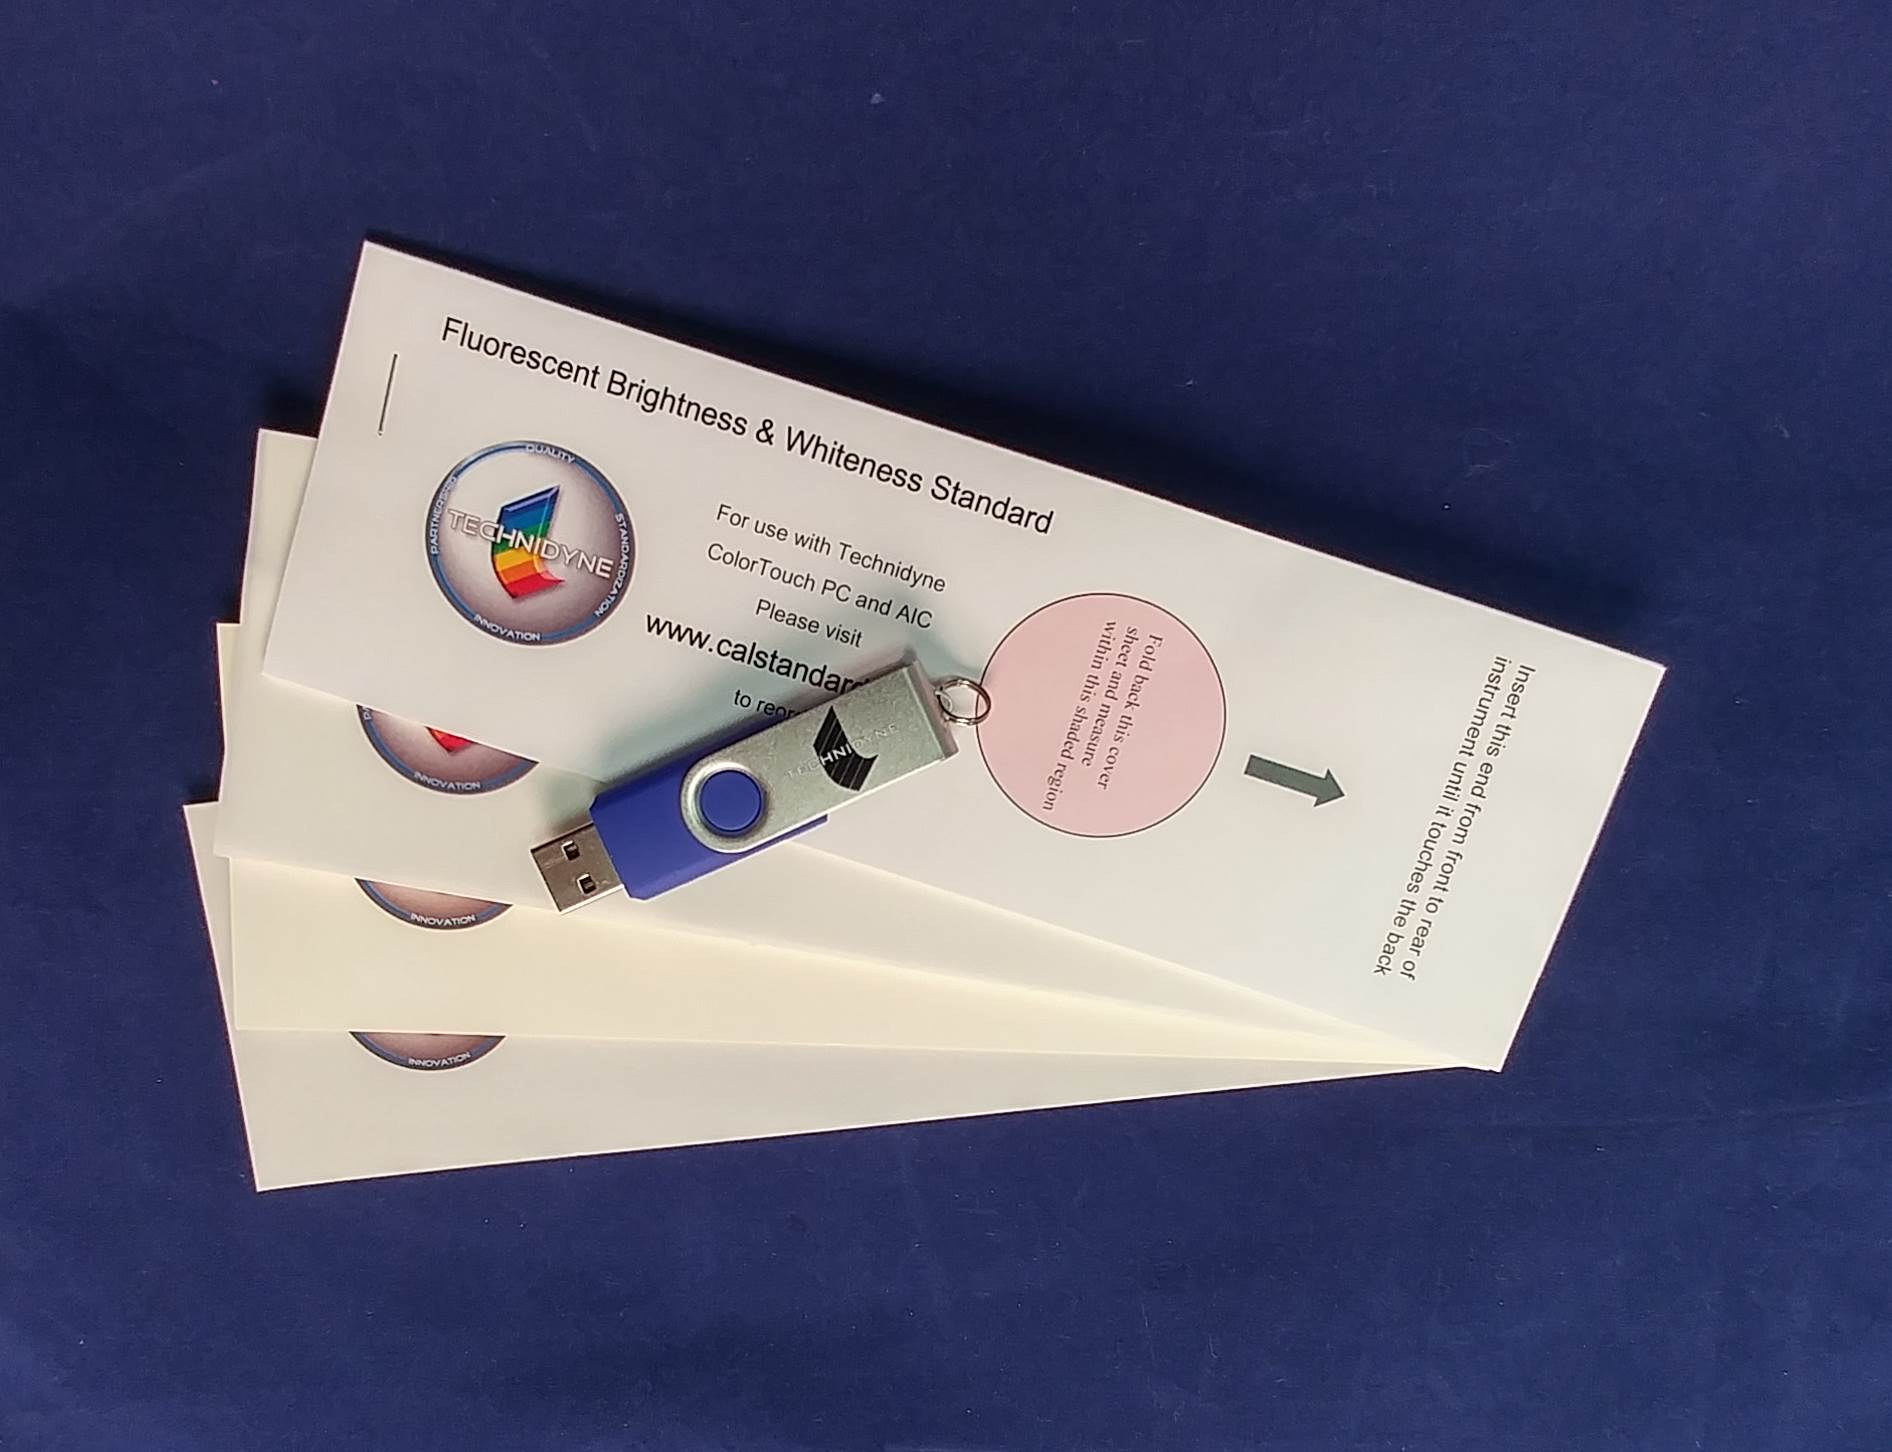 ColorTouch PC - ISO Spectrophotometric Calibration and Verification Standards Kit (IR3 Level) (CCIETB25)